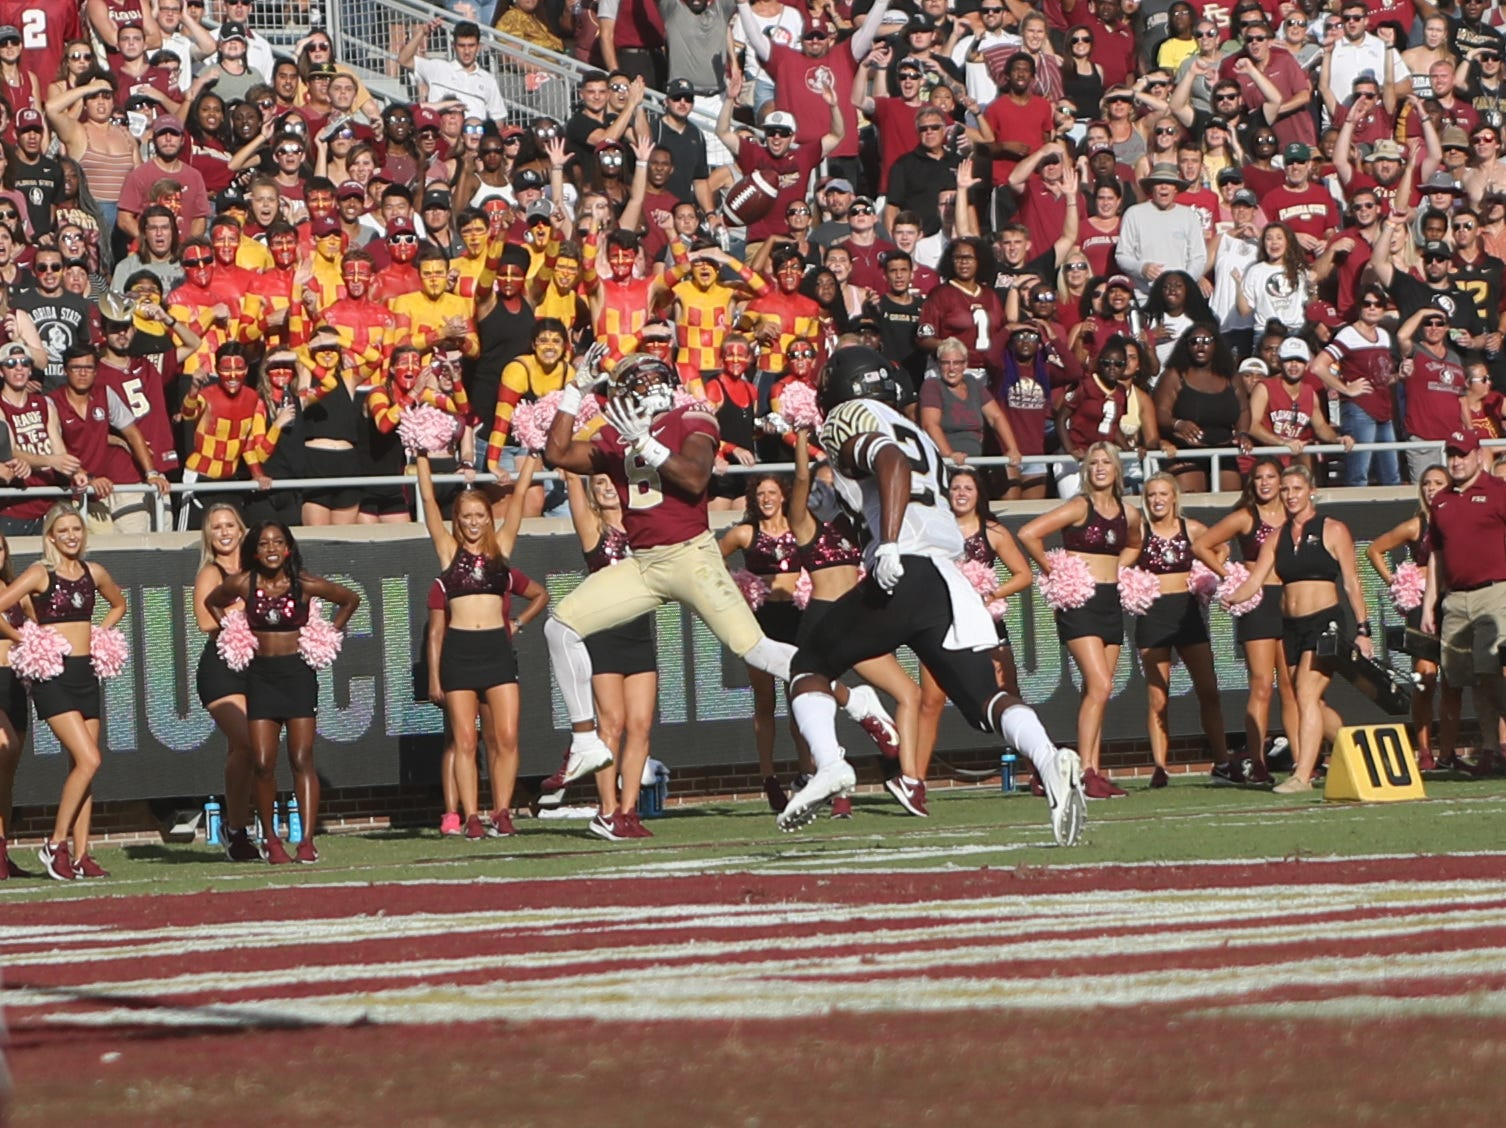 Florida State Seminoles wide receiver Nyqwan Murray (8) looks for a catch near the end zone during FSU's homecoming game against Wake Forest at Doak S. Campbell Stadium Saturday, Oct. 20, 2018.